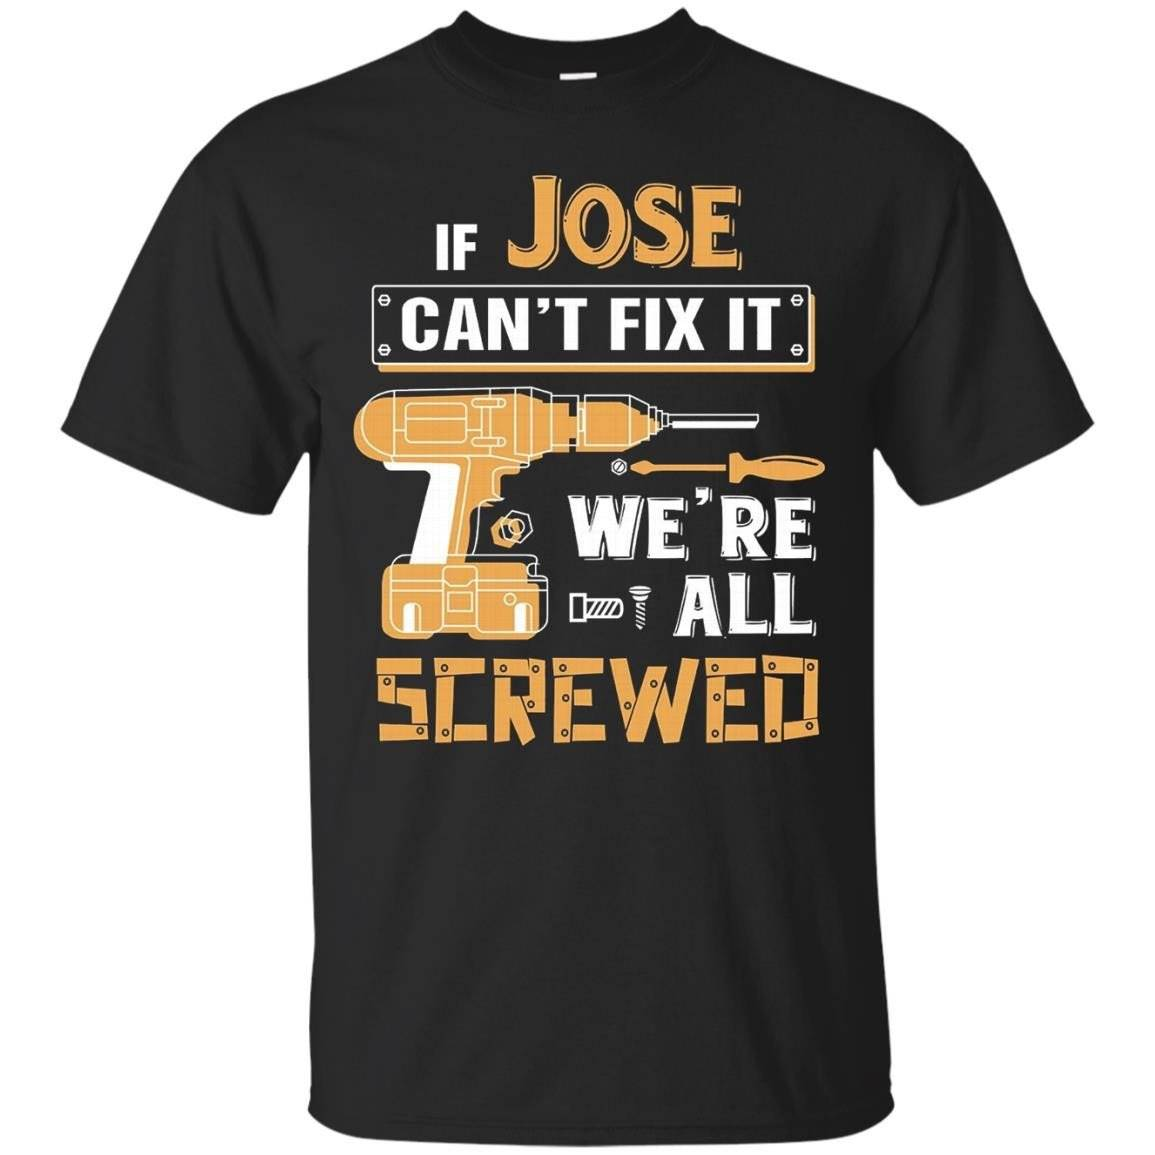 If Jose Can't Fix It All We Screwed T-Shirt